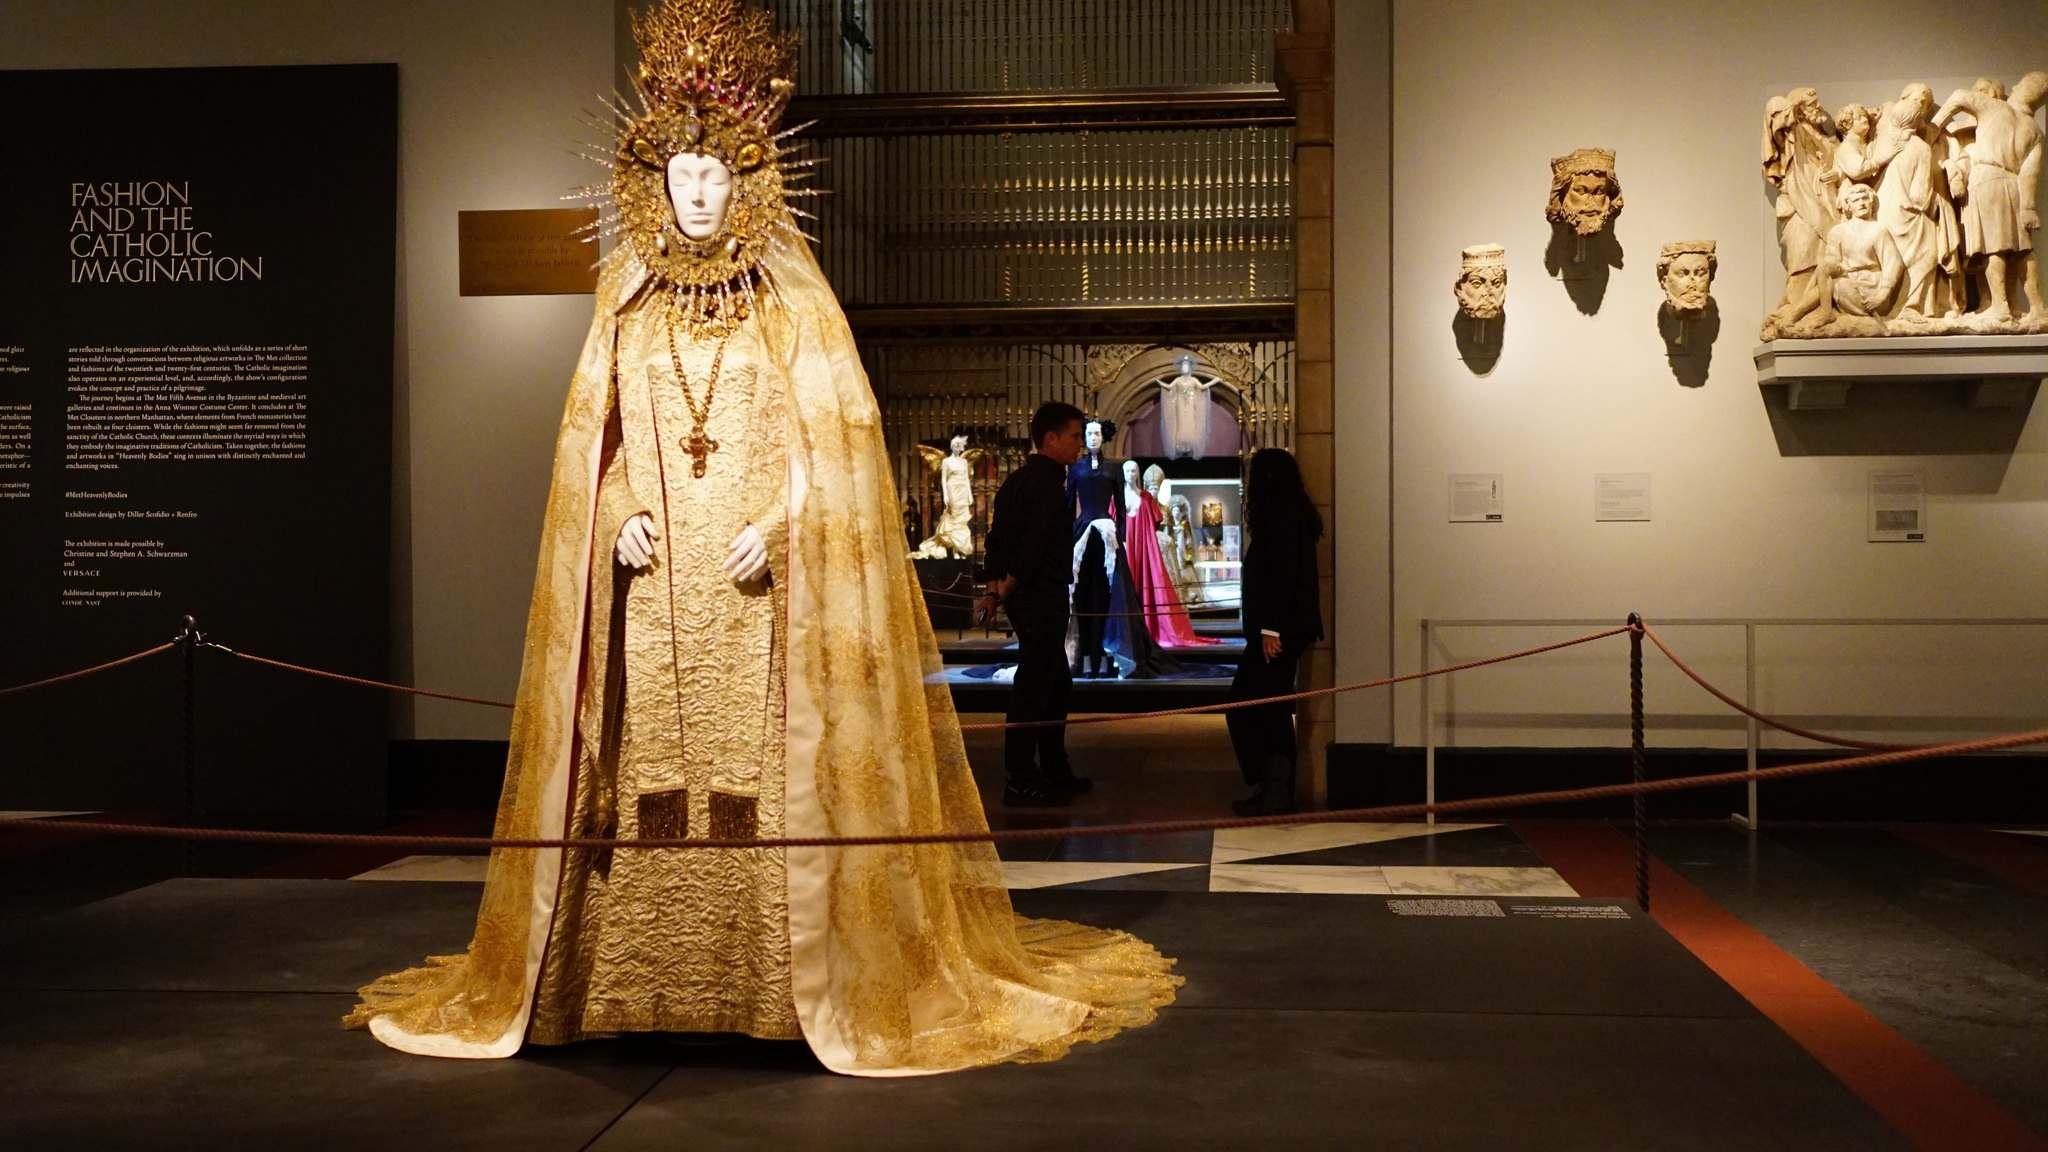 heavenly bodies10 Heavenly Bodies: Fashion and the Catholic Imagination in MET